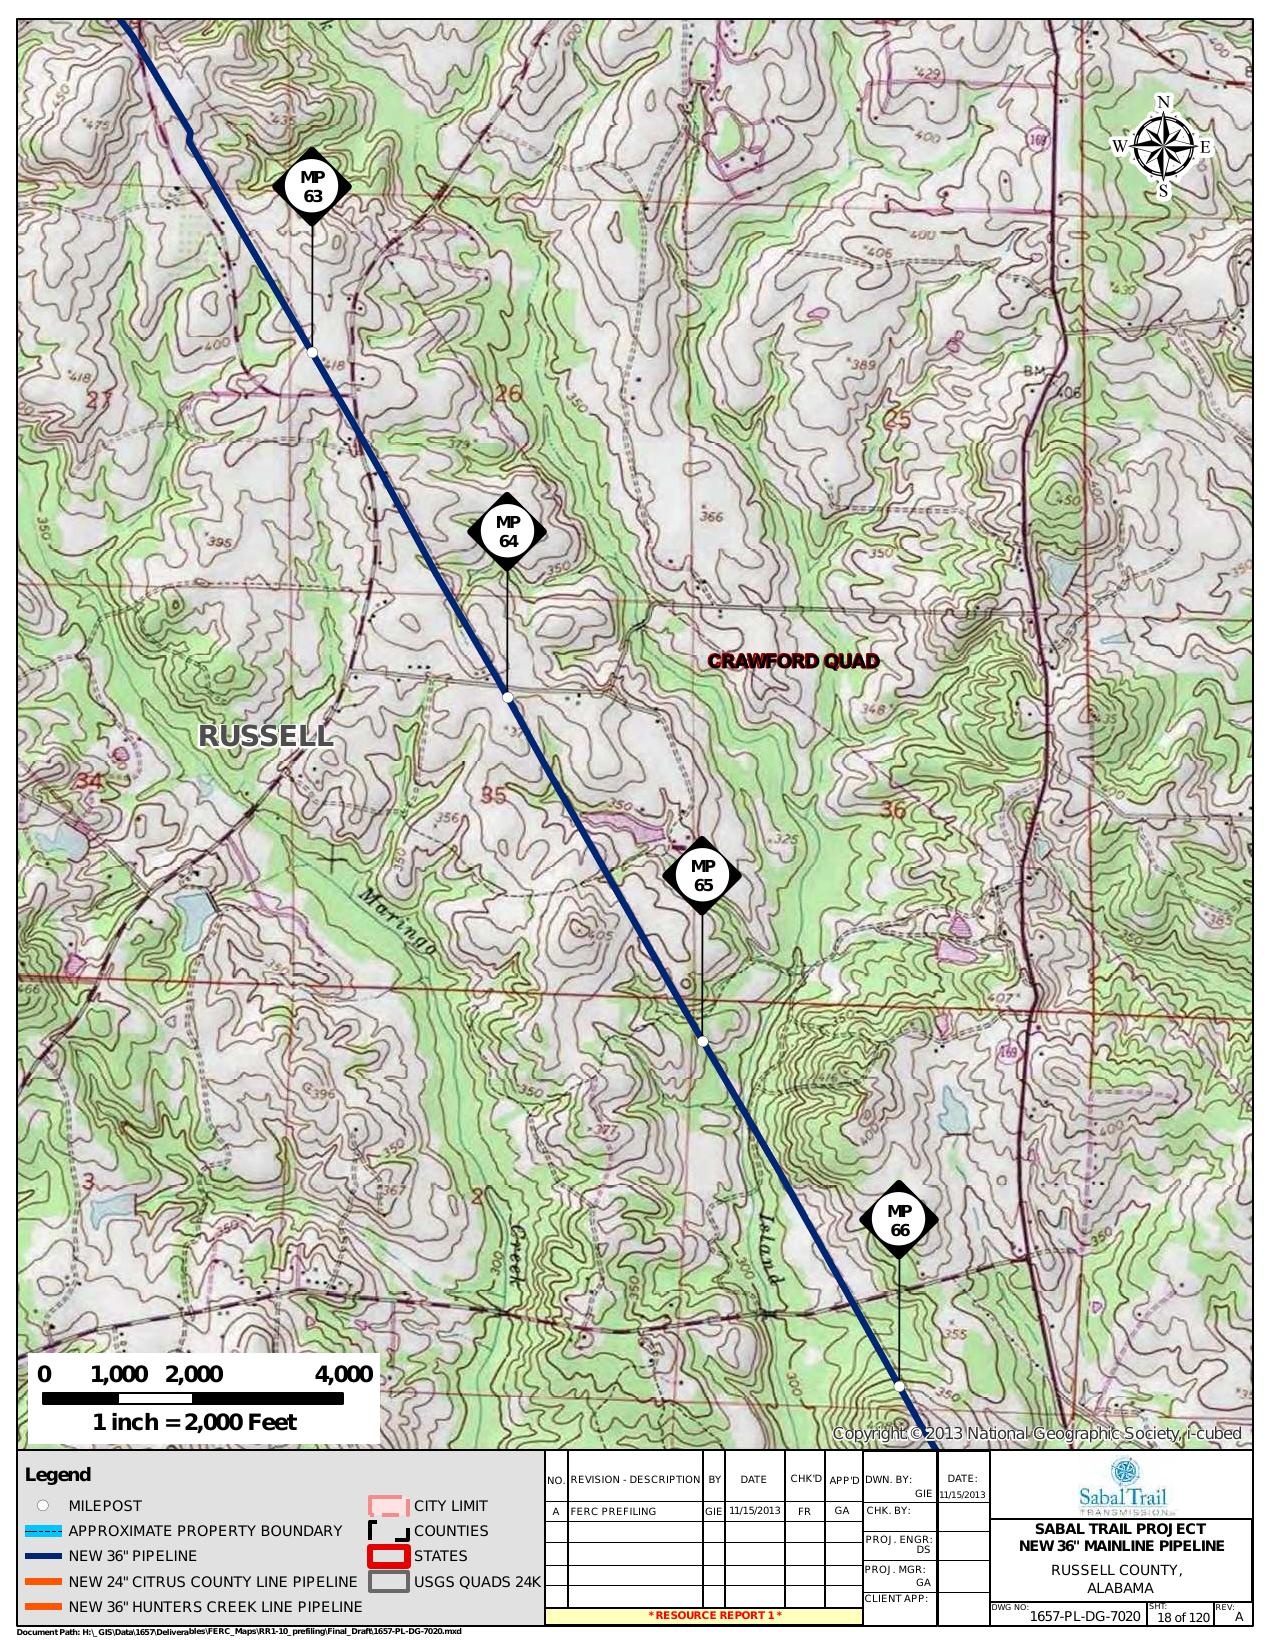 Maringo Creek, Russell County, Alabama, in General Project Description, by SpectraBusters, for FERC Docket No. PF14-1-000, 15 November 2013, converted by SpectraBusters